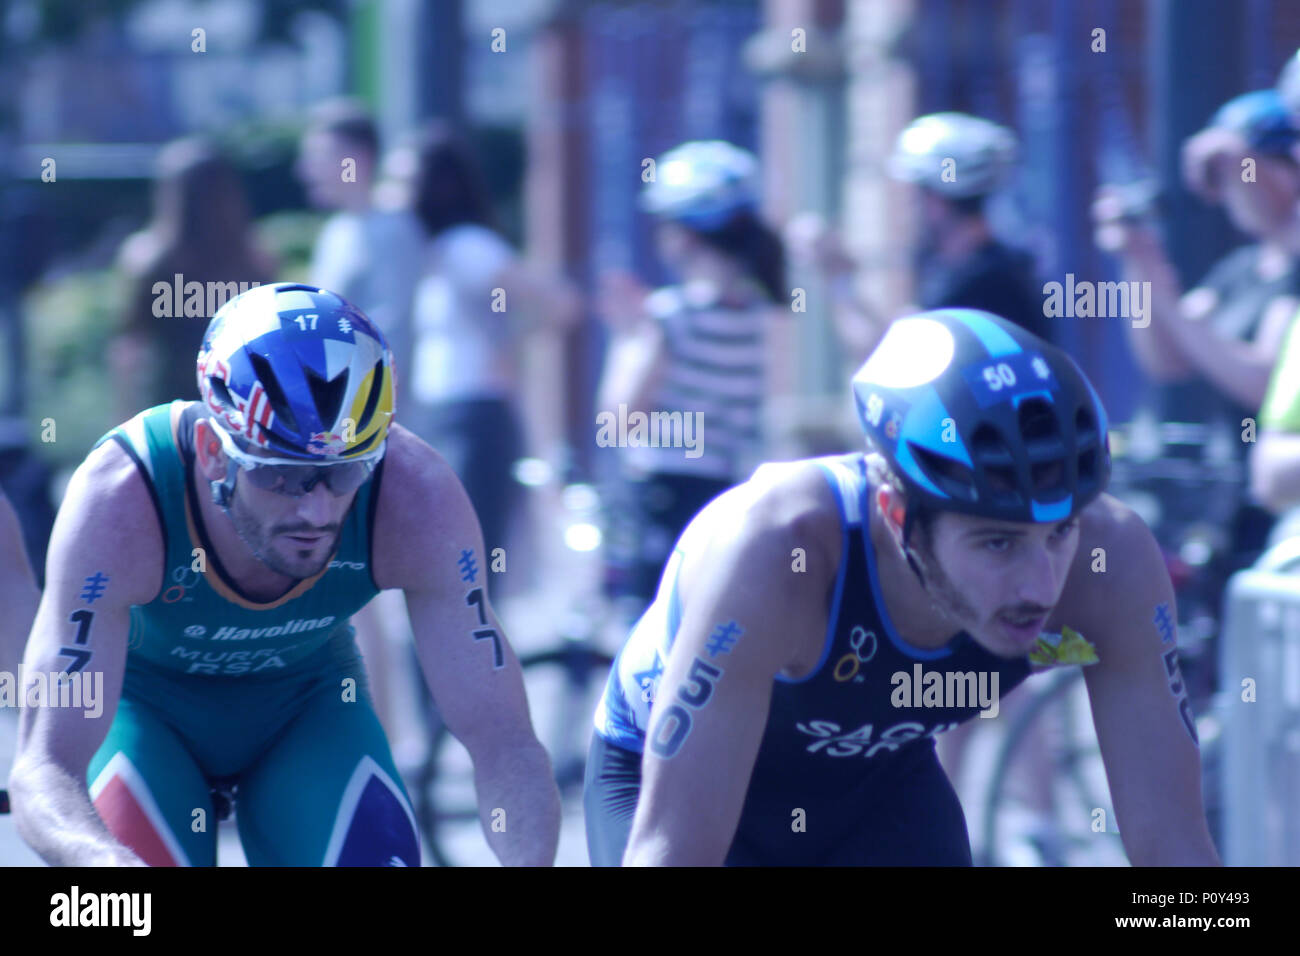 Leeds, UK, 10th June 2018. Richard Murray, Number 17, of RSA, during the cycle, with Sagir Shachar, number 50, from Israel, on his way to winning the ITU World Triathlon Leeds. Credit: Jonathan Sedgwick/ Alamy Live News. - Stock Image